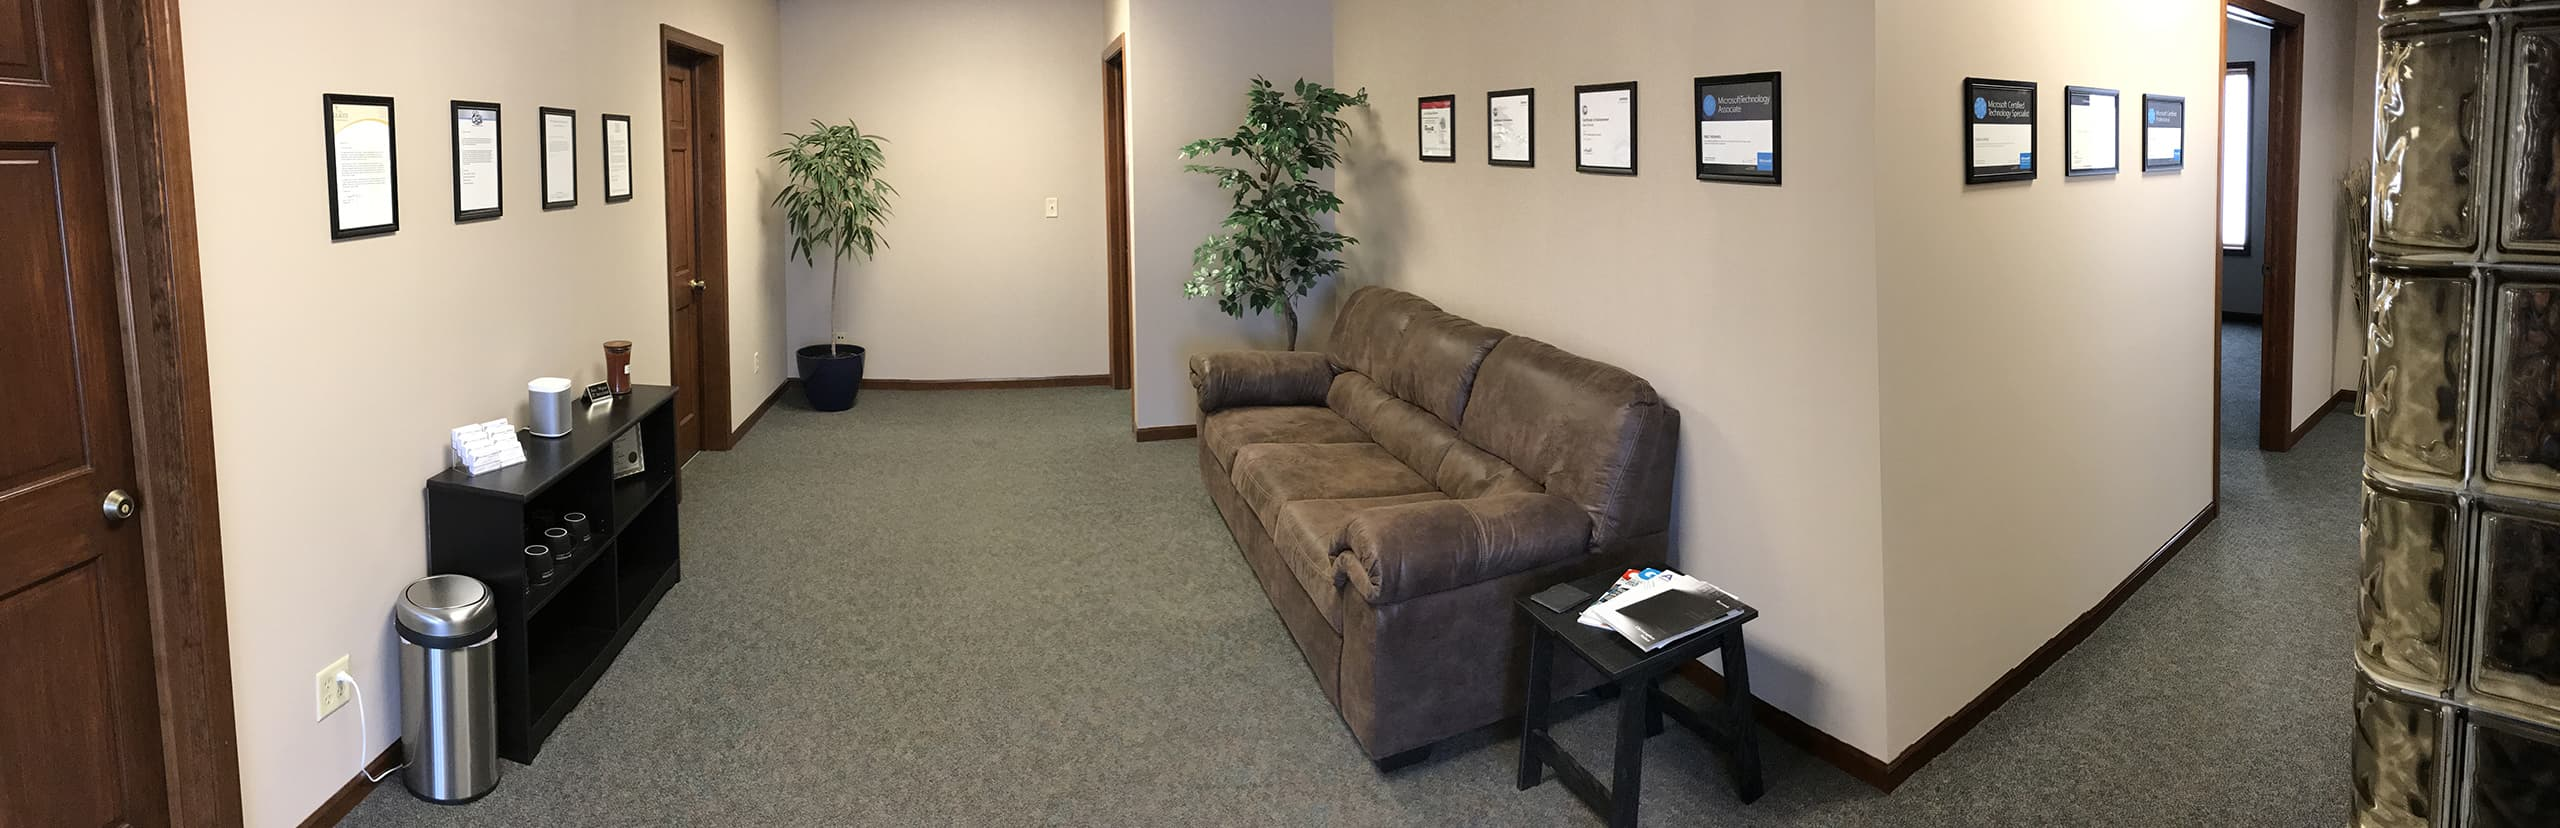 Fort Wayne IT Solutions - Main Office